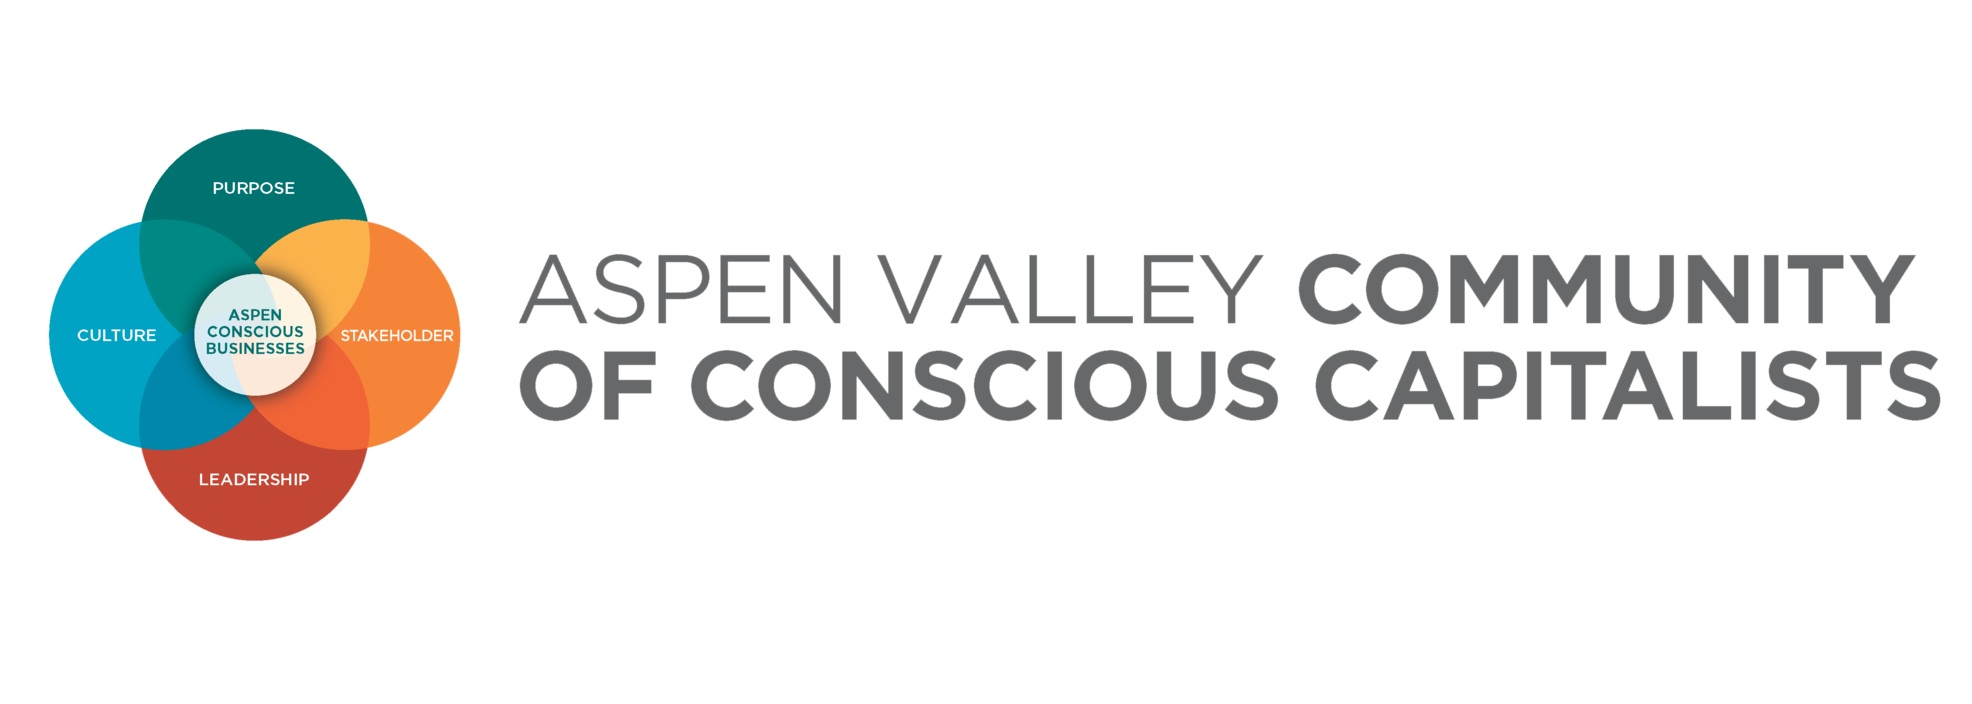 aspen-valley-community-logo.jpg